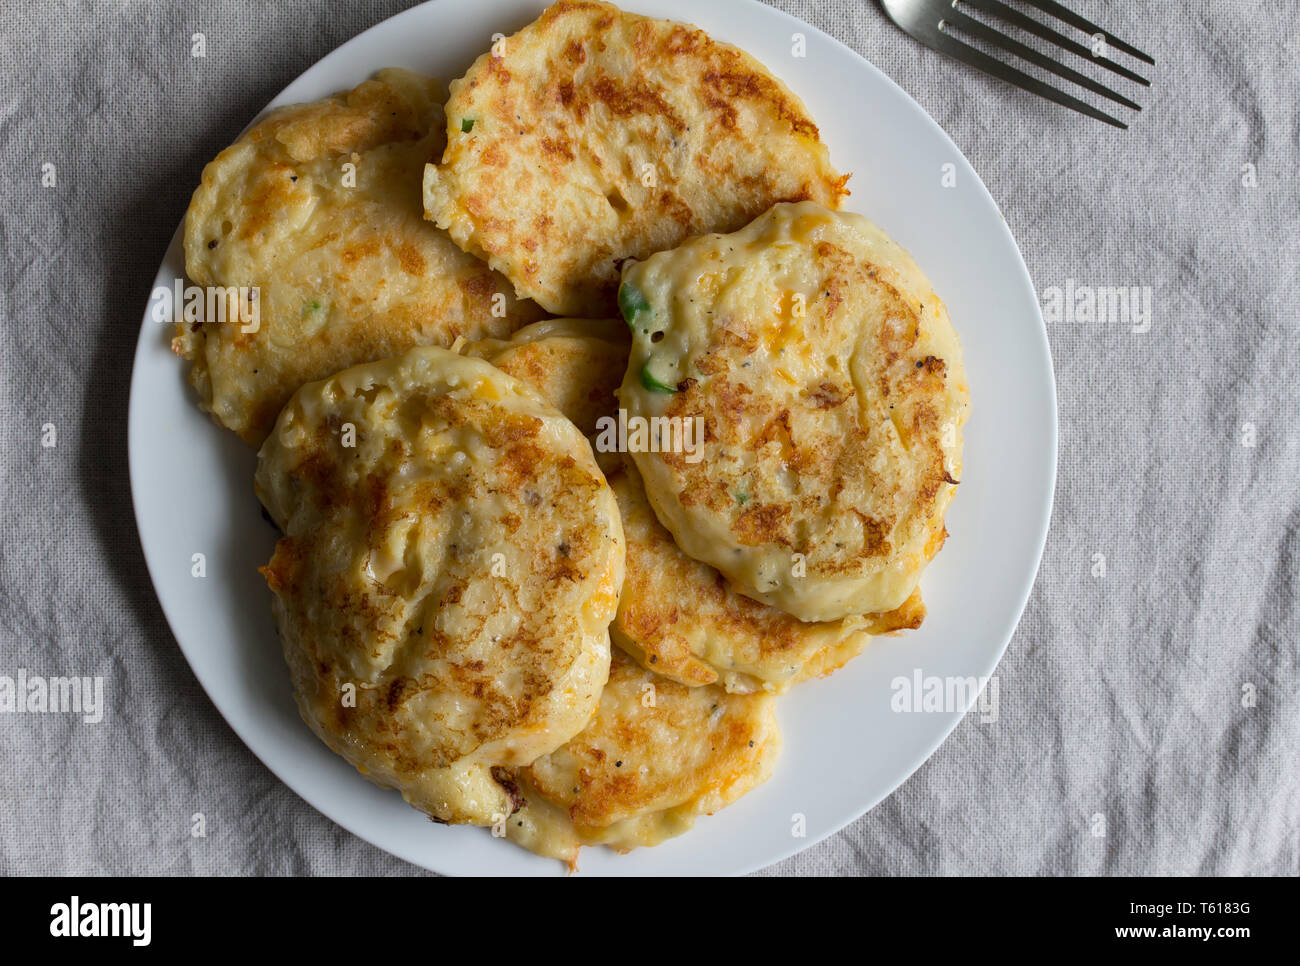 Potato pan cakes on white plate - Top view of cheesy hash browns - Stock Image